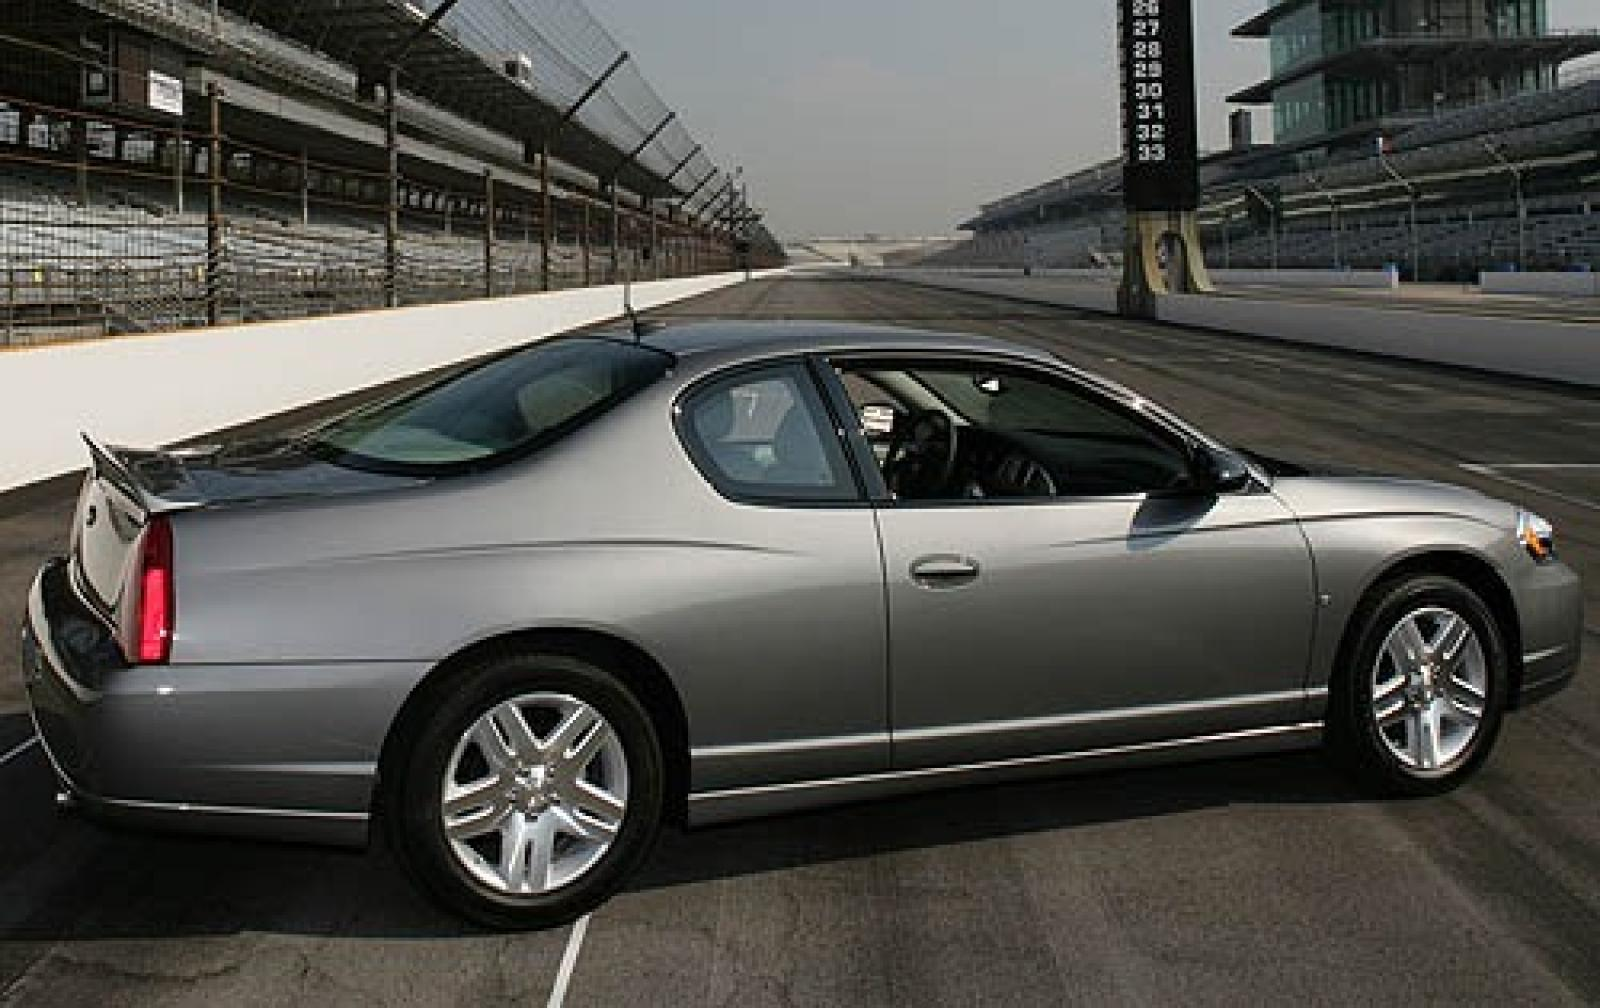 2007 Chevrolet Monte Carlo Information And Photos Zomb Drive